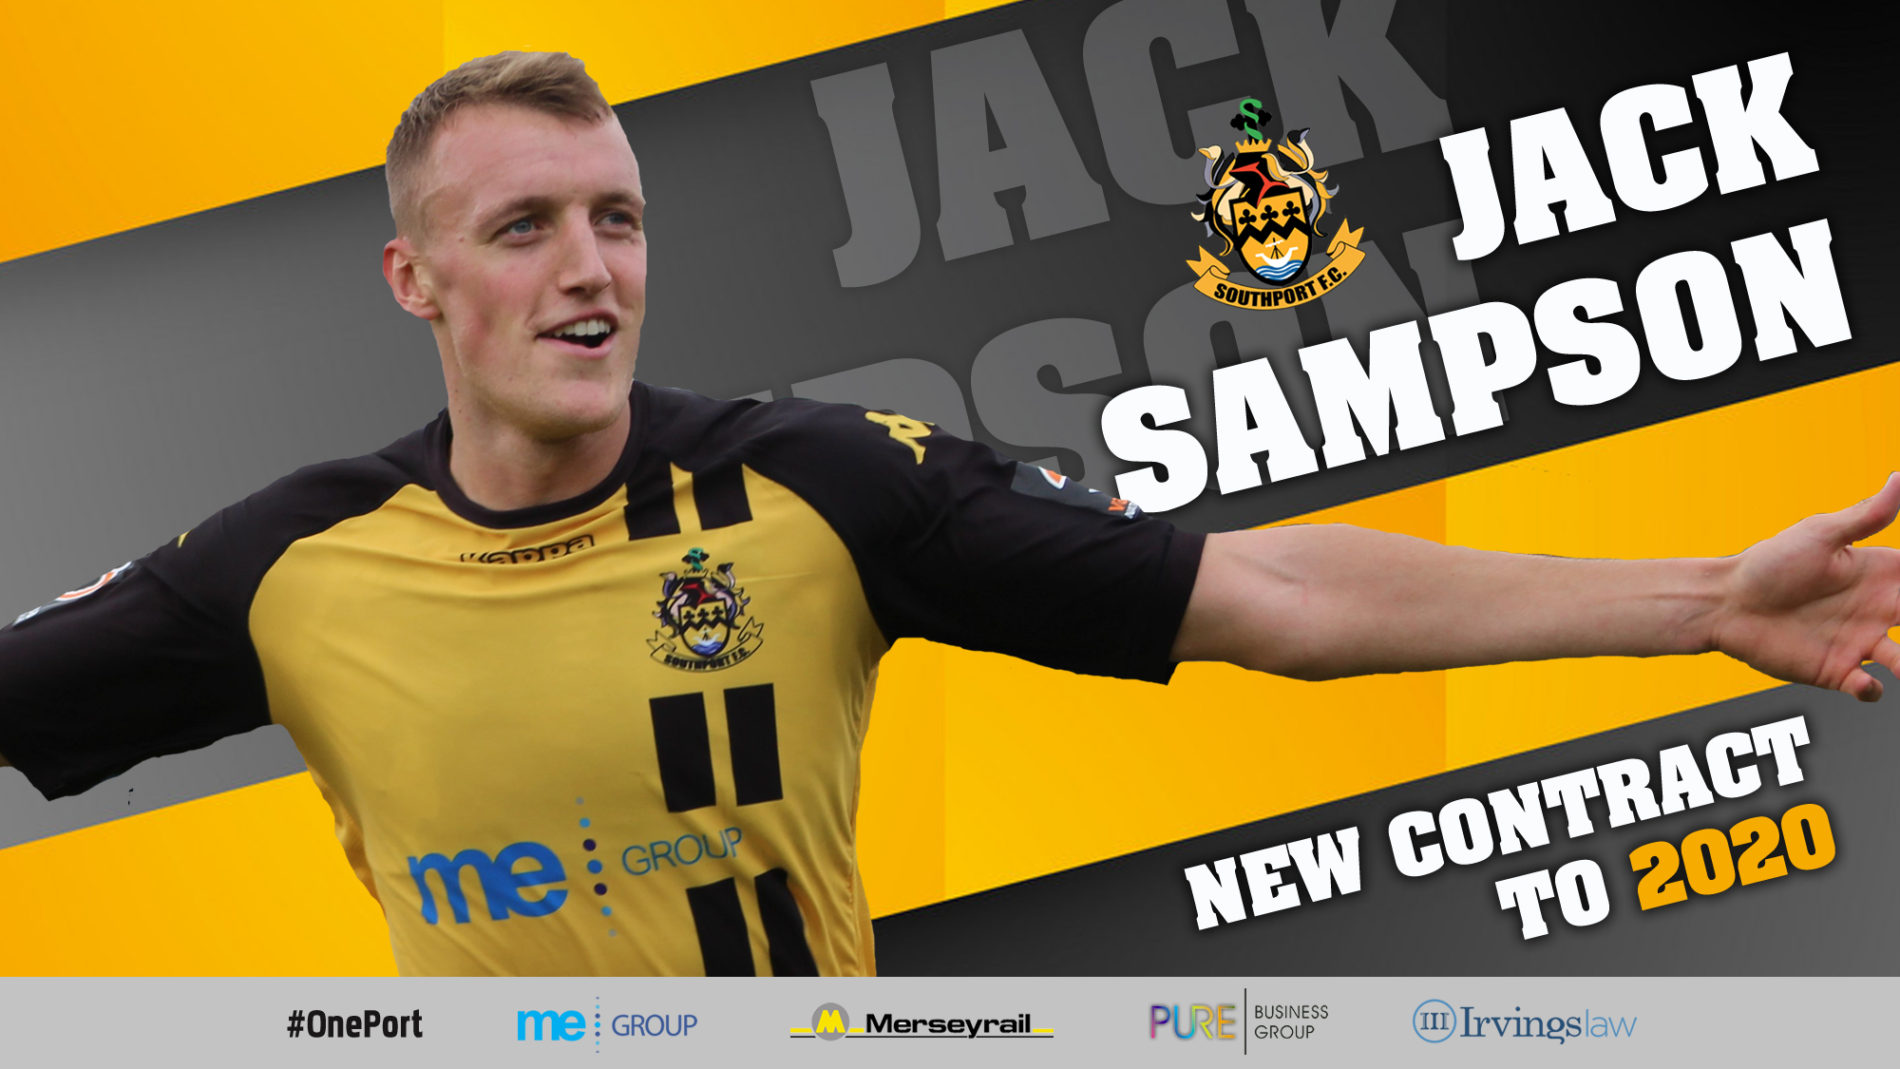 EXTENSION | Jack Sampson 2020